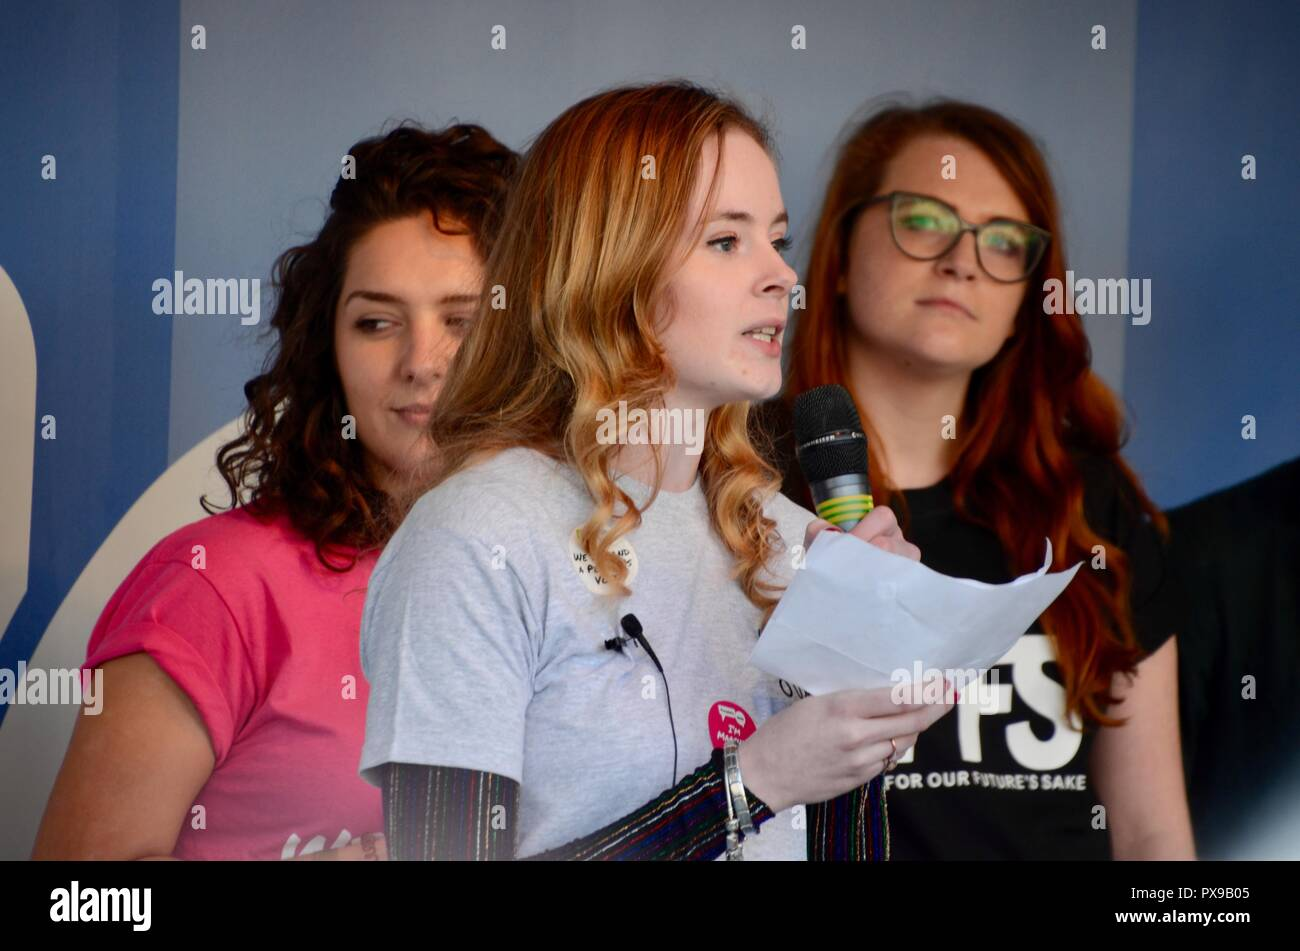 London, UK. 20th Oct, 2018. young northern irish woman addresses the peoples vote crowd london october 20th 2018 Credit: simon leigh/Alamy Live News Stock Photo